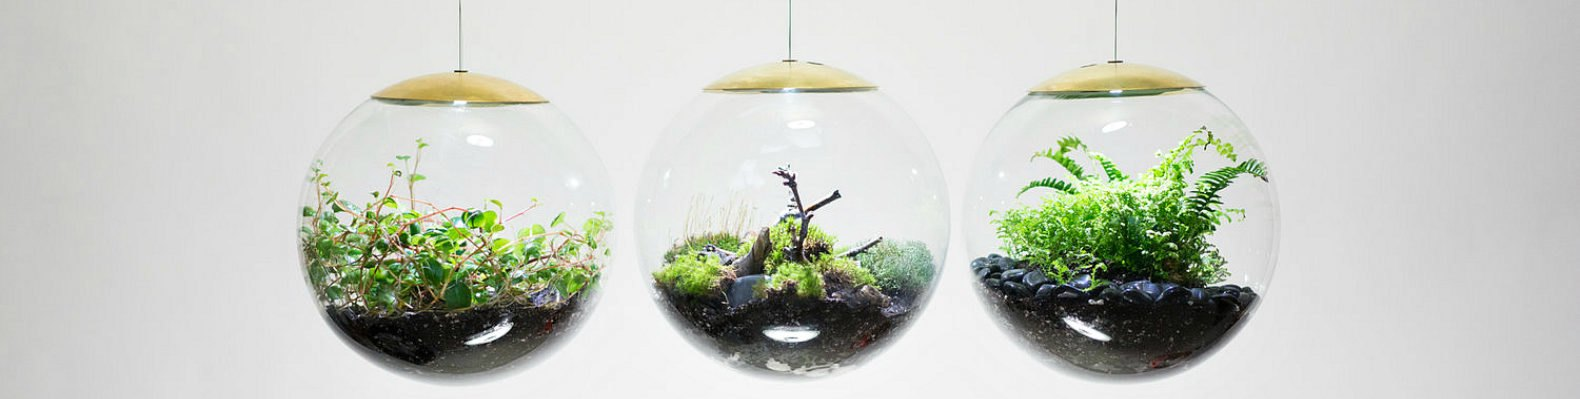 These Amazing Terrarium Lamps Grow Plants In Even The Darkest Rooms